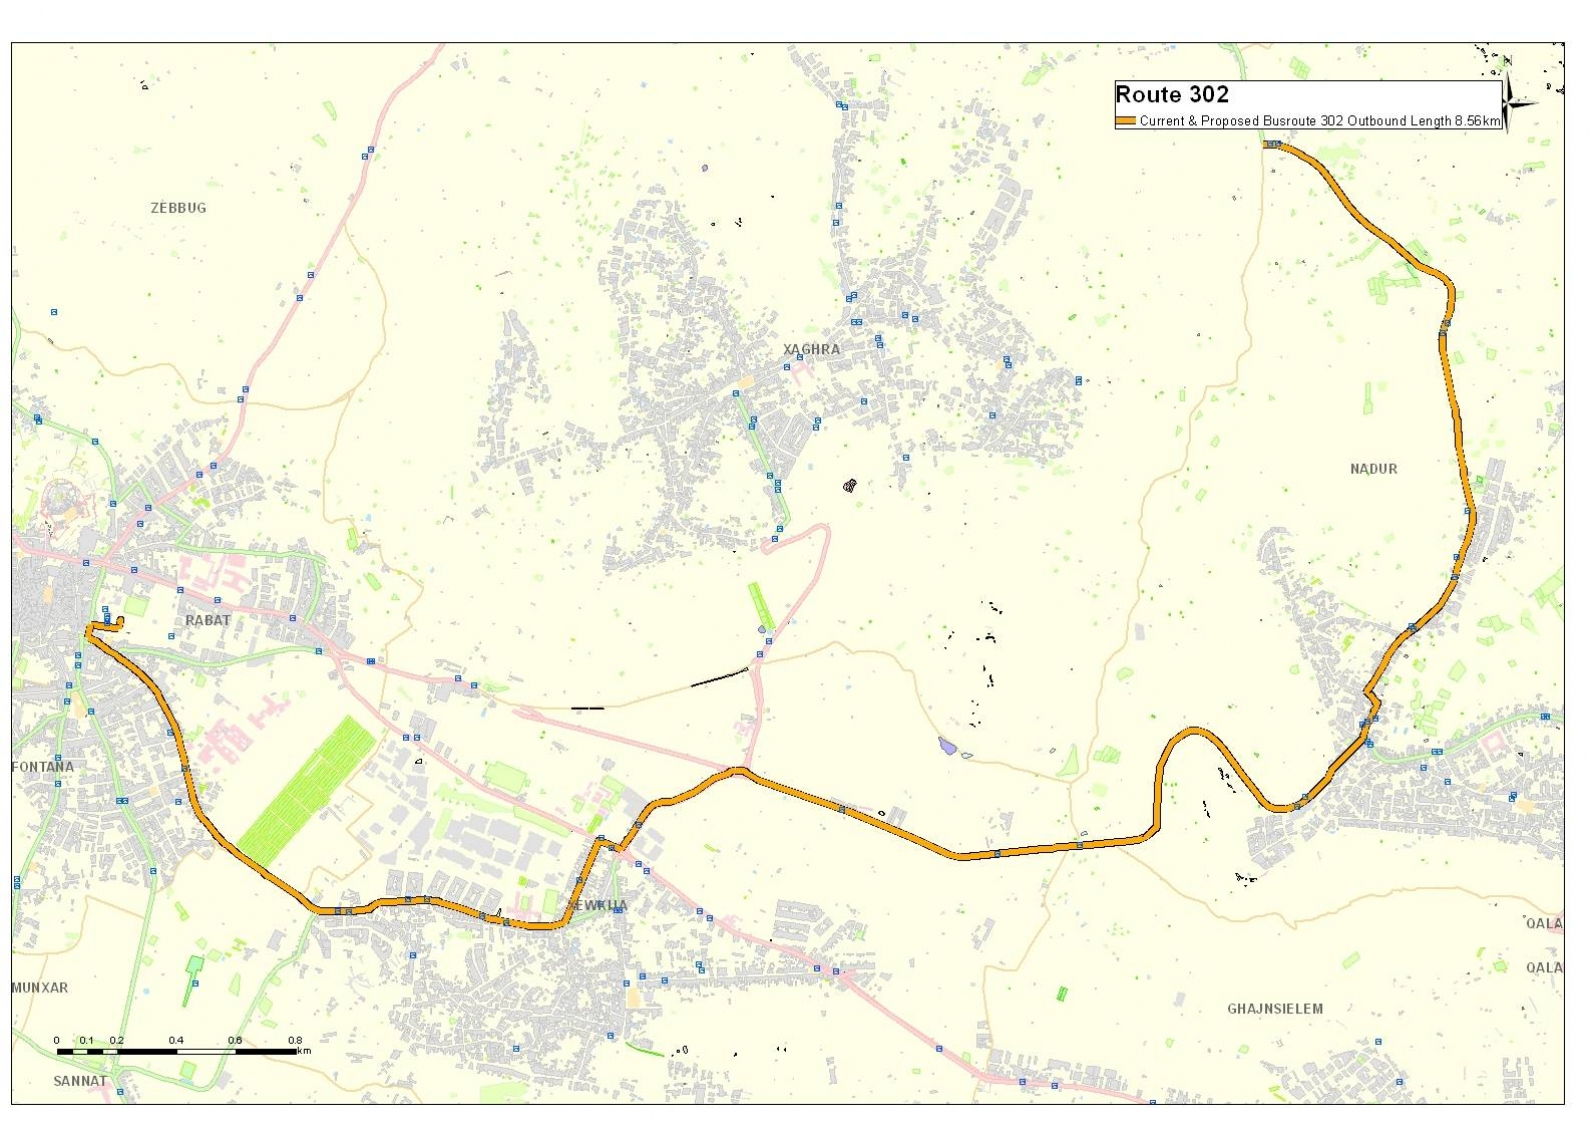 Land-current-network-routes-and-schedules-Gozo-4